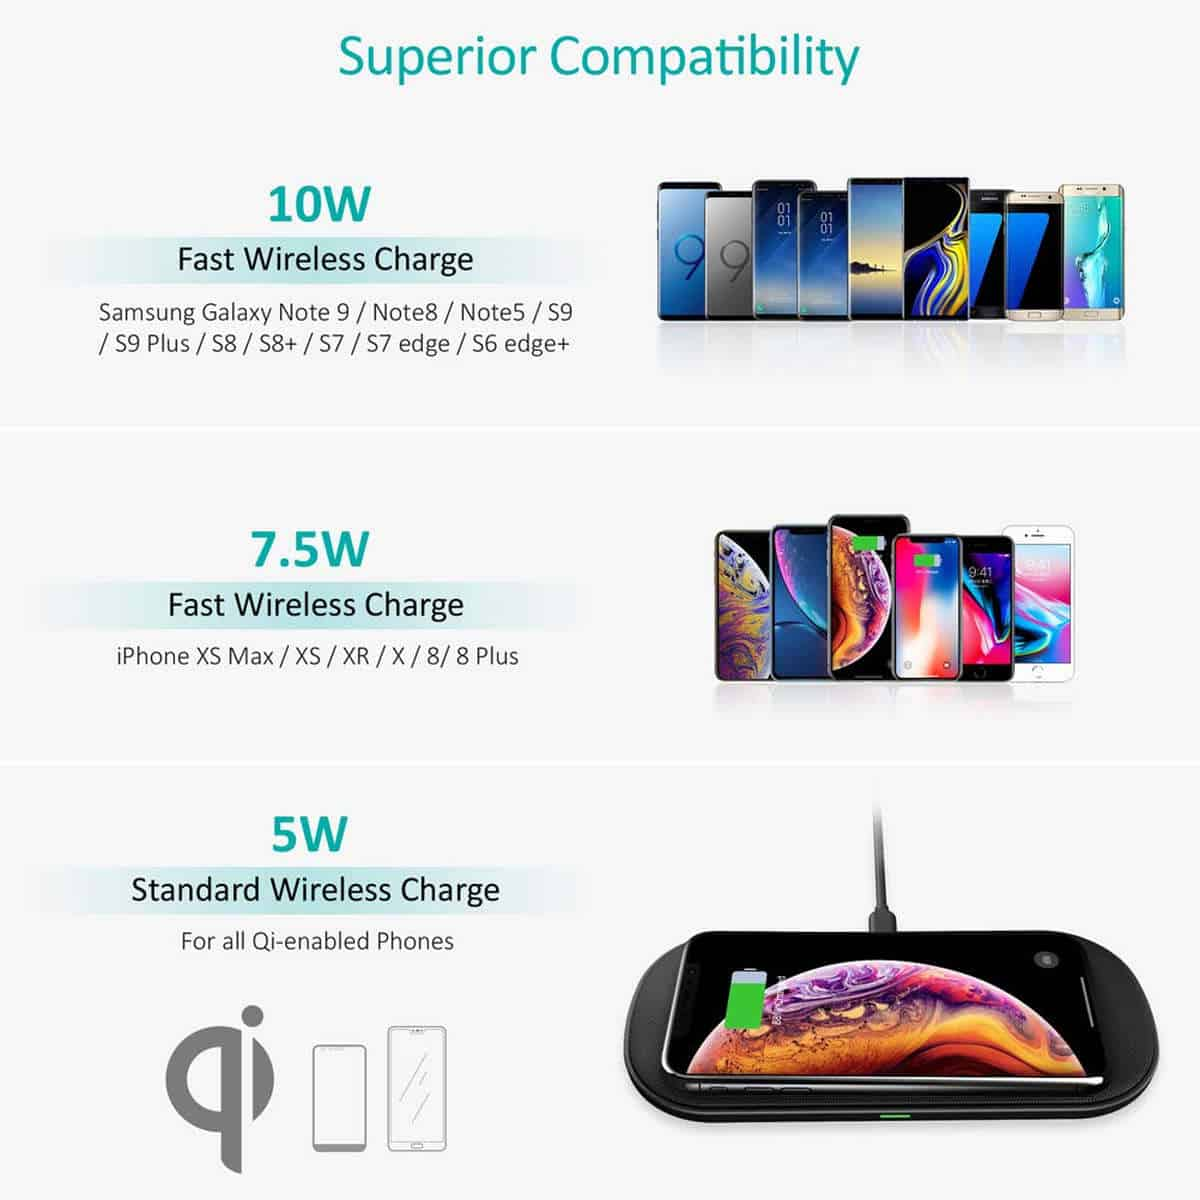 CHOETECH Dual Wireless ChargerSuperior compatibility | CHOETECH Qi Fast Dual Wireless Charging Pad | Product Review